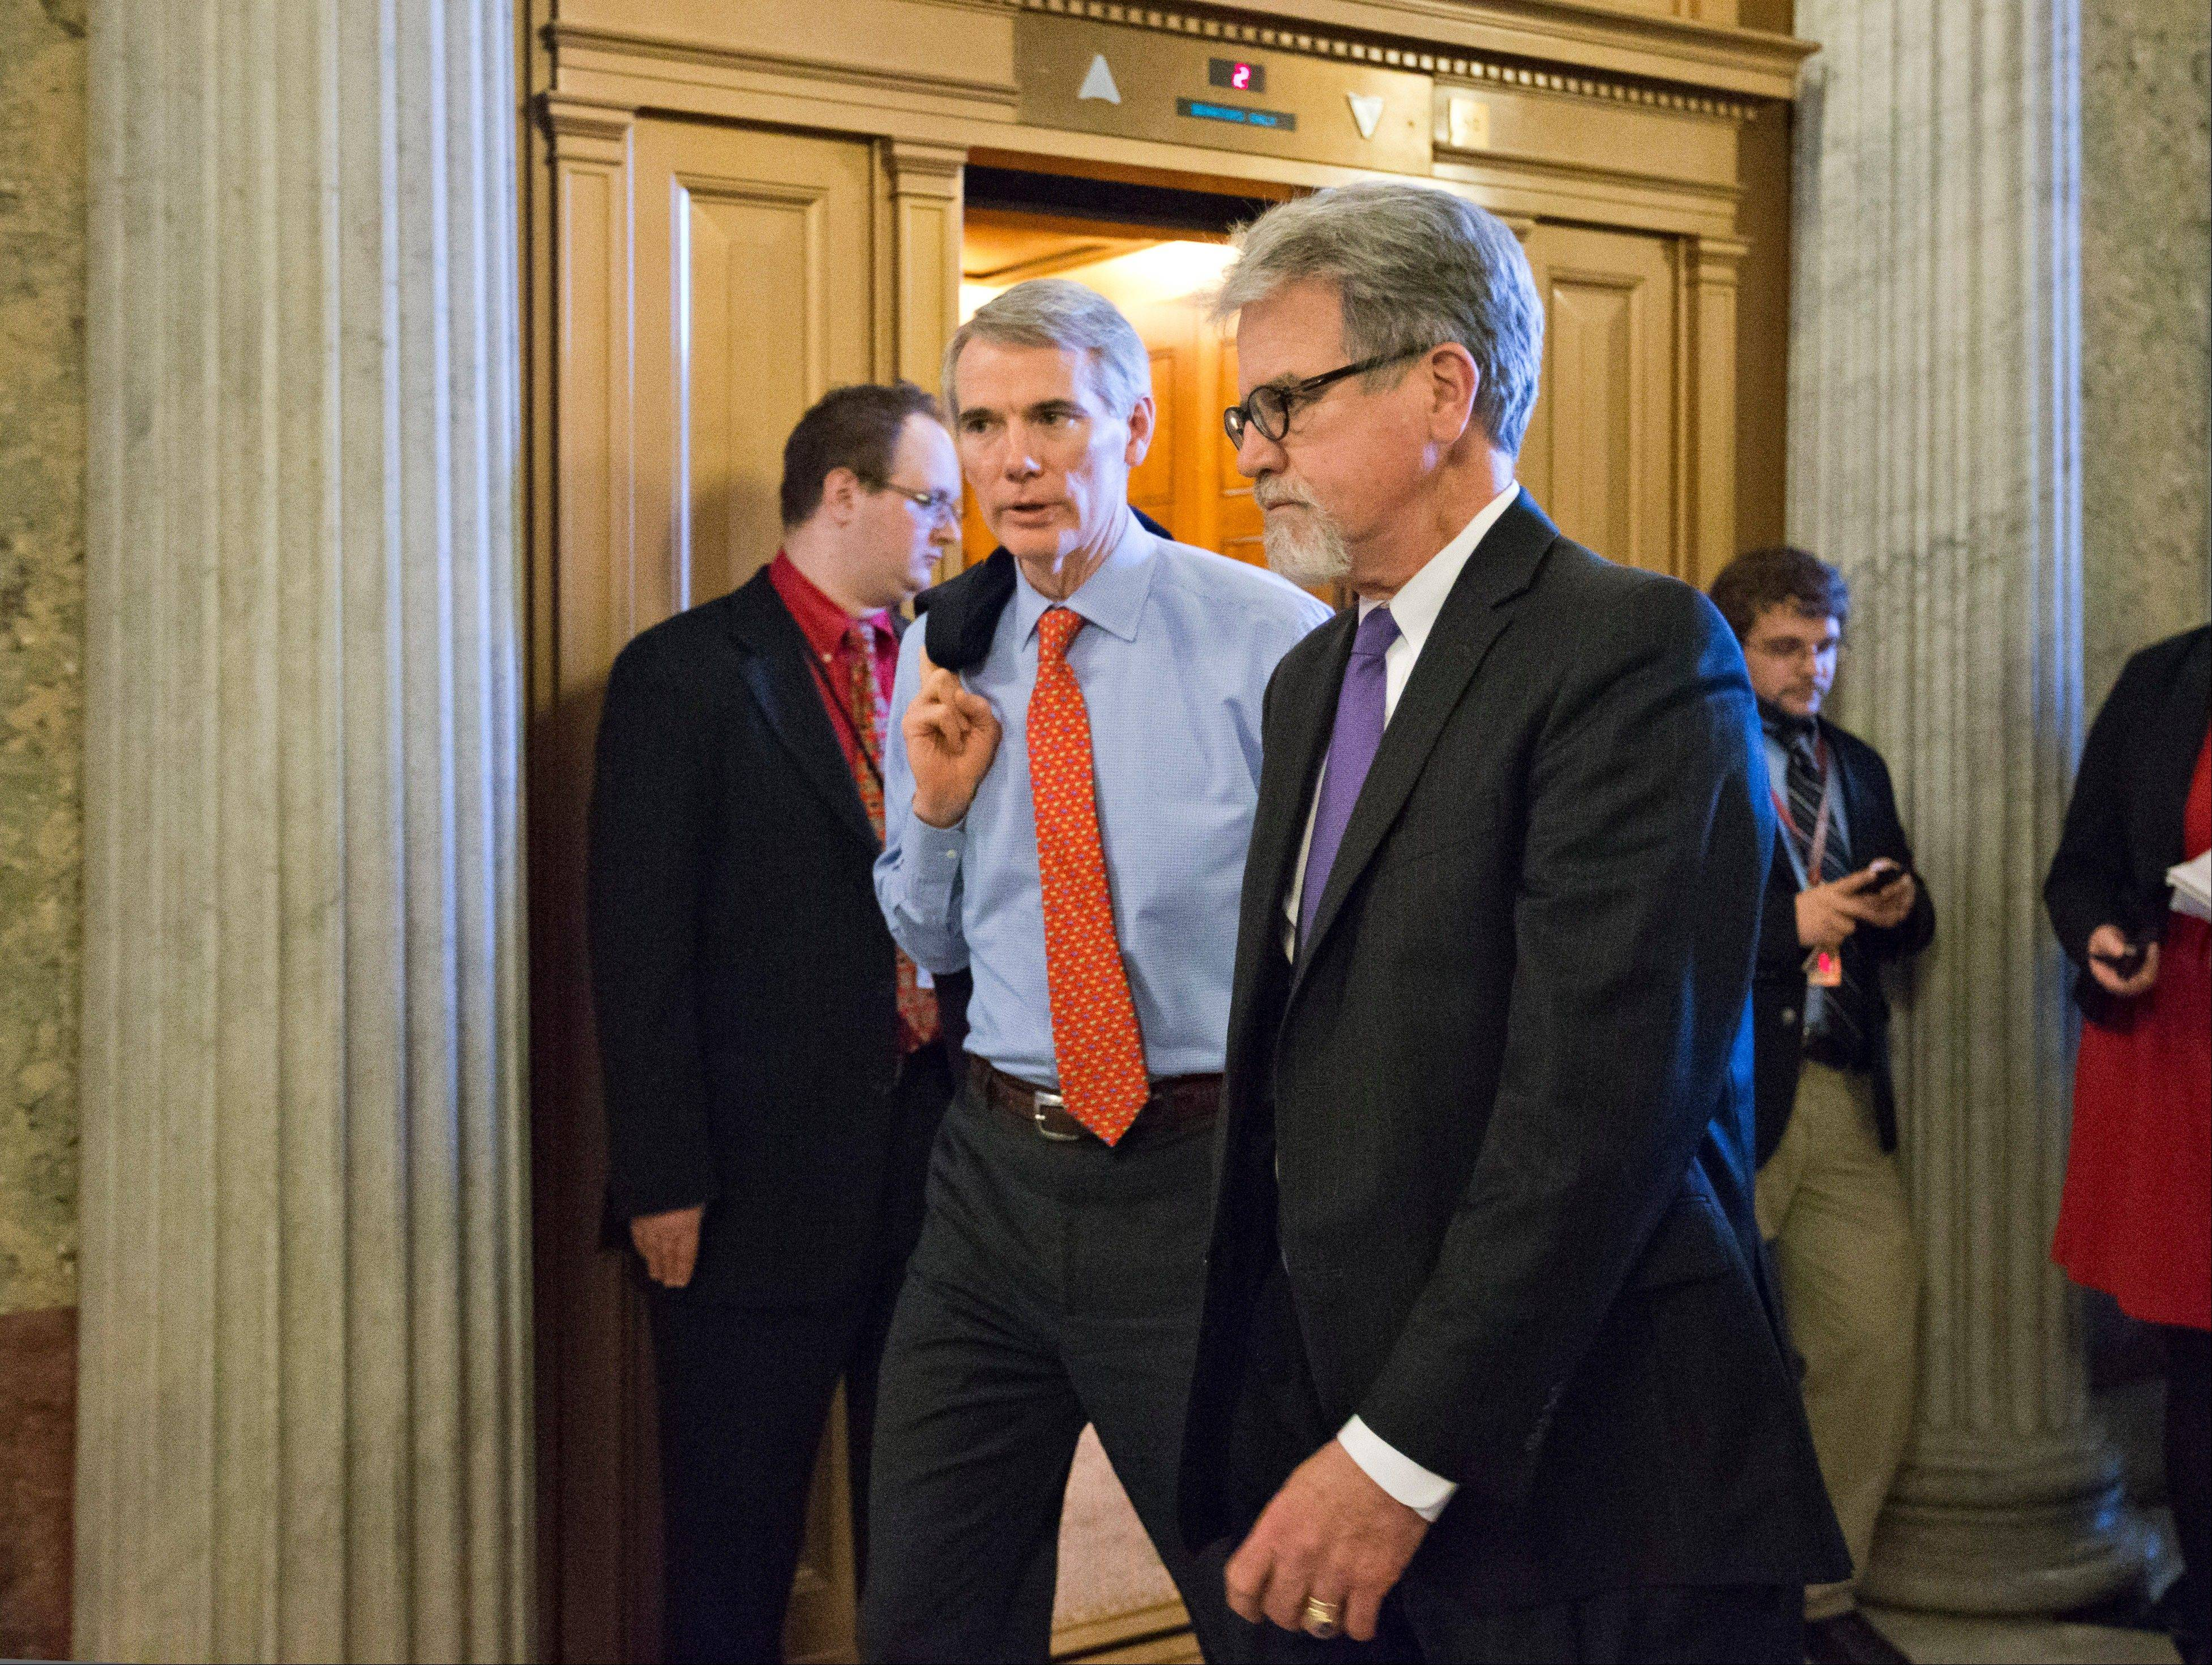 Sen. Tom Coburn, R-Okla., right, and Sen. Rob Portman, R-Ohio, left, arrive for the vote to end debate on the nomination of former GOP senator Chuck Hagel as the nation's next secretary of defense, at the Capitol in Washington, Thursday, Feb. 14, 2013.